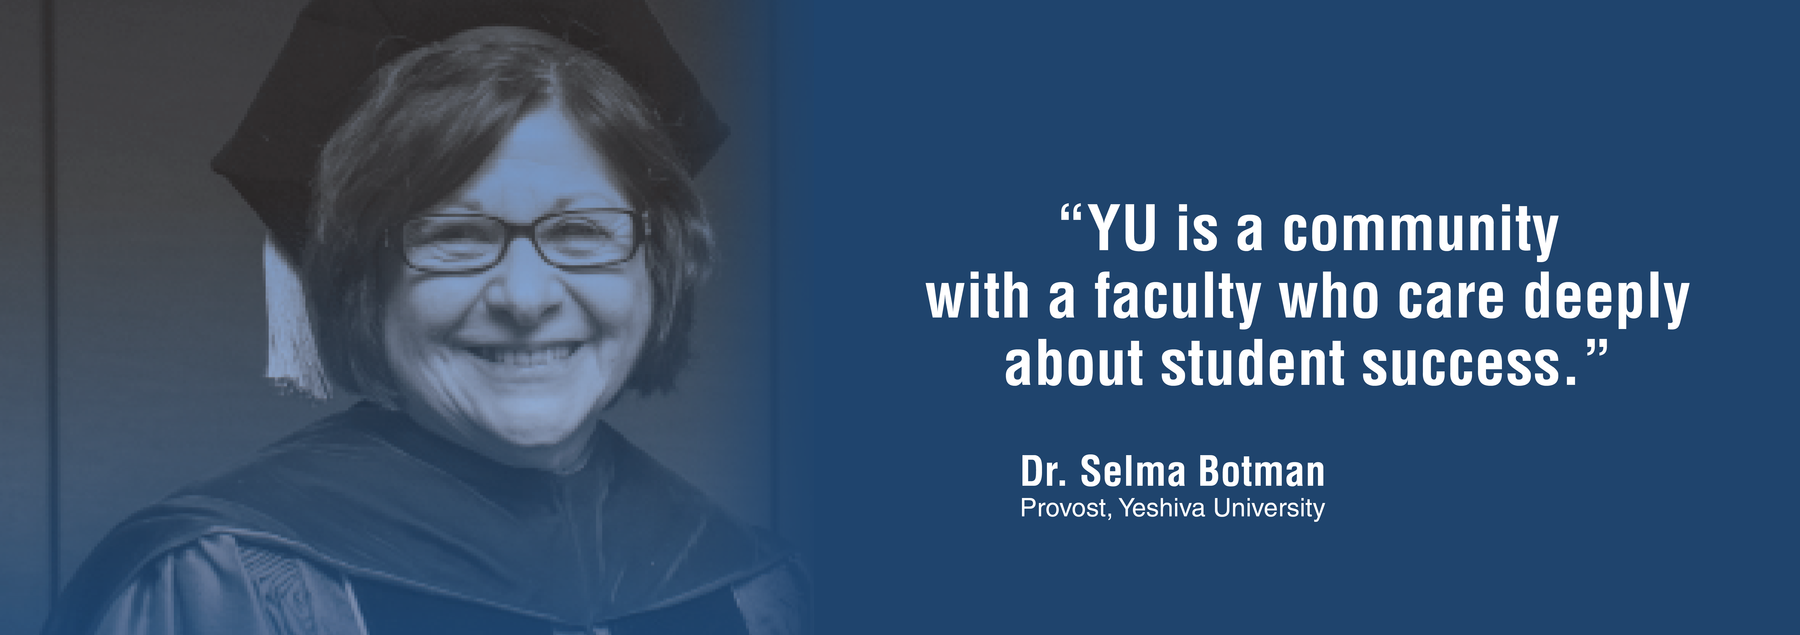 "Dr. Selma Botman, provost quote ""YU is a community with a faculty who care deeply about student success"""